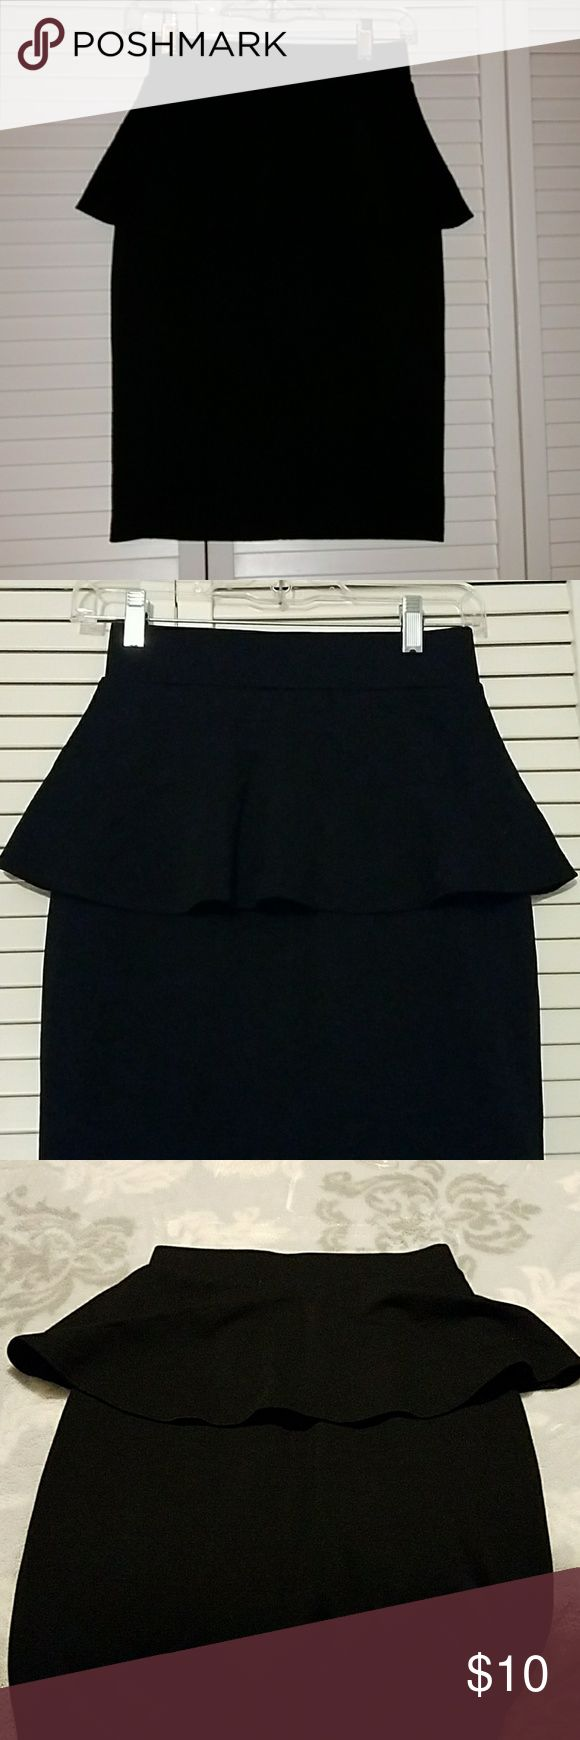 Black peplum skirt Cute and girly peplum skirt, length is to the knee. In excellent condition, used only once. Skirt is comfy and stretchy. OPEN TO OFFERS Skirts Pencil